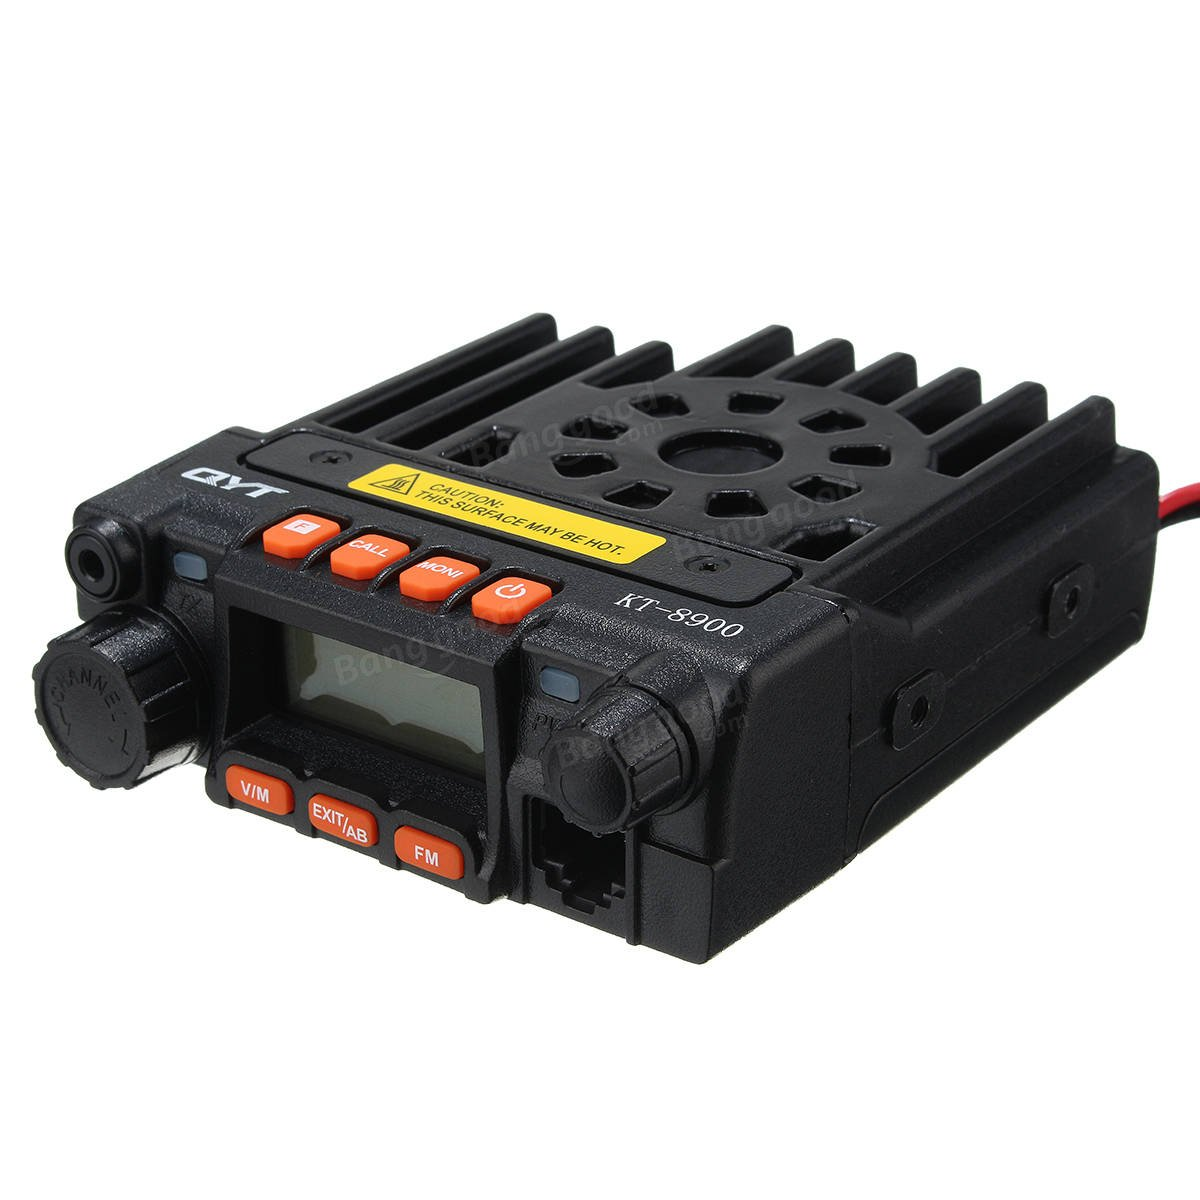 Mobile Radio Double Transceiver for Car VHF//UHF 136-174//400-480MHz Two Way Radio Car Radio Transceivers Radio Transceiver Radio Transceivers